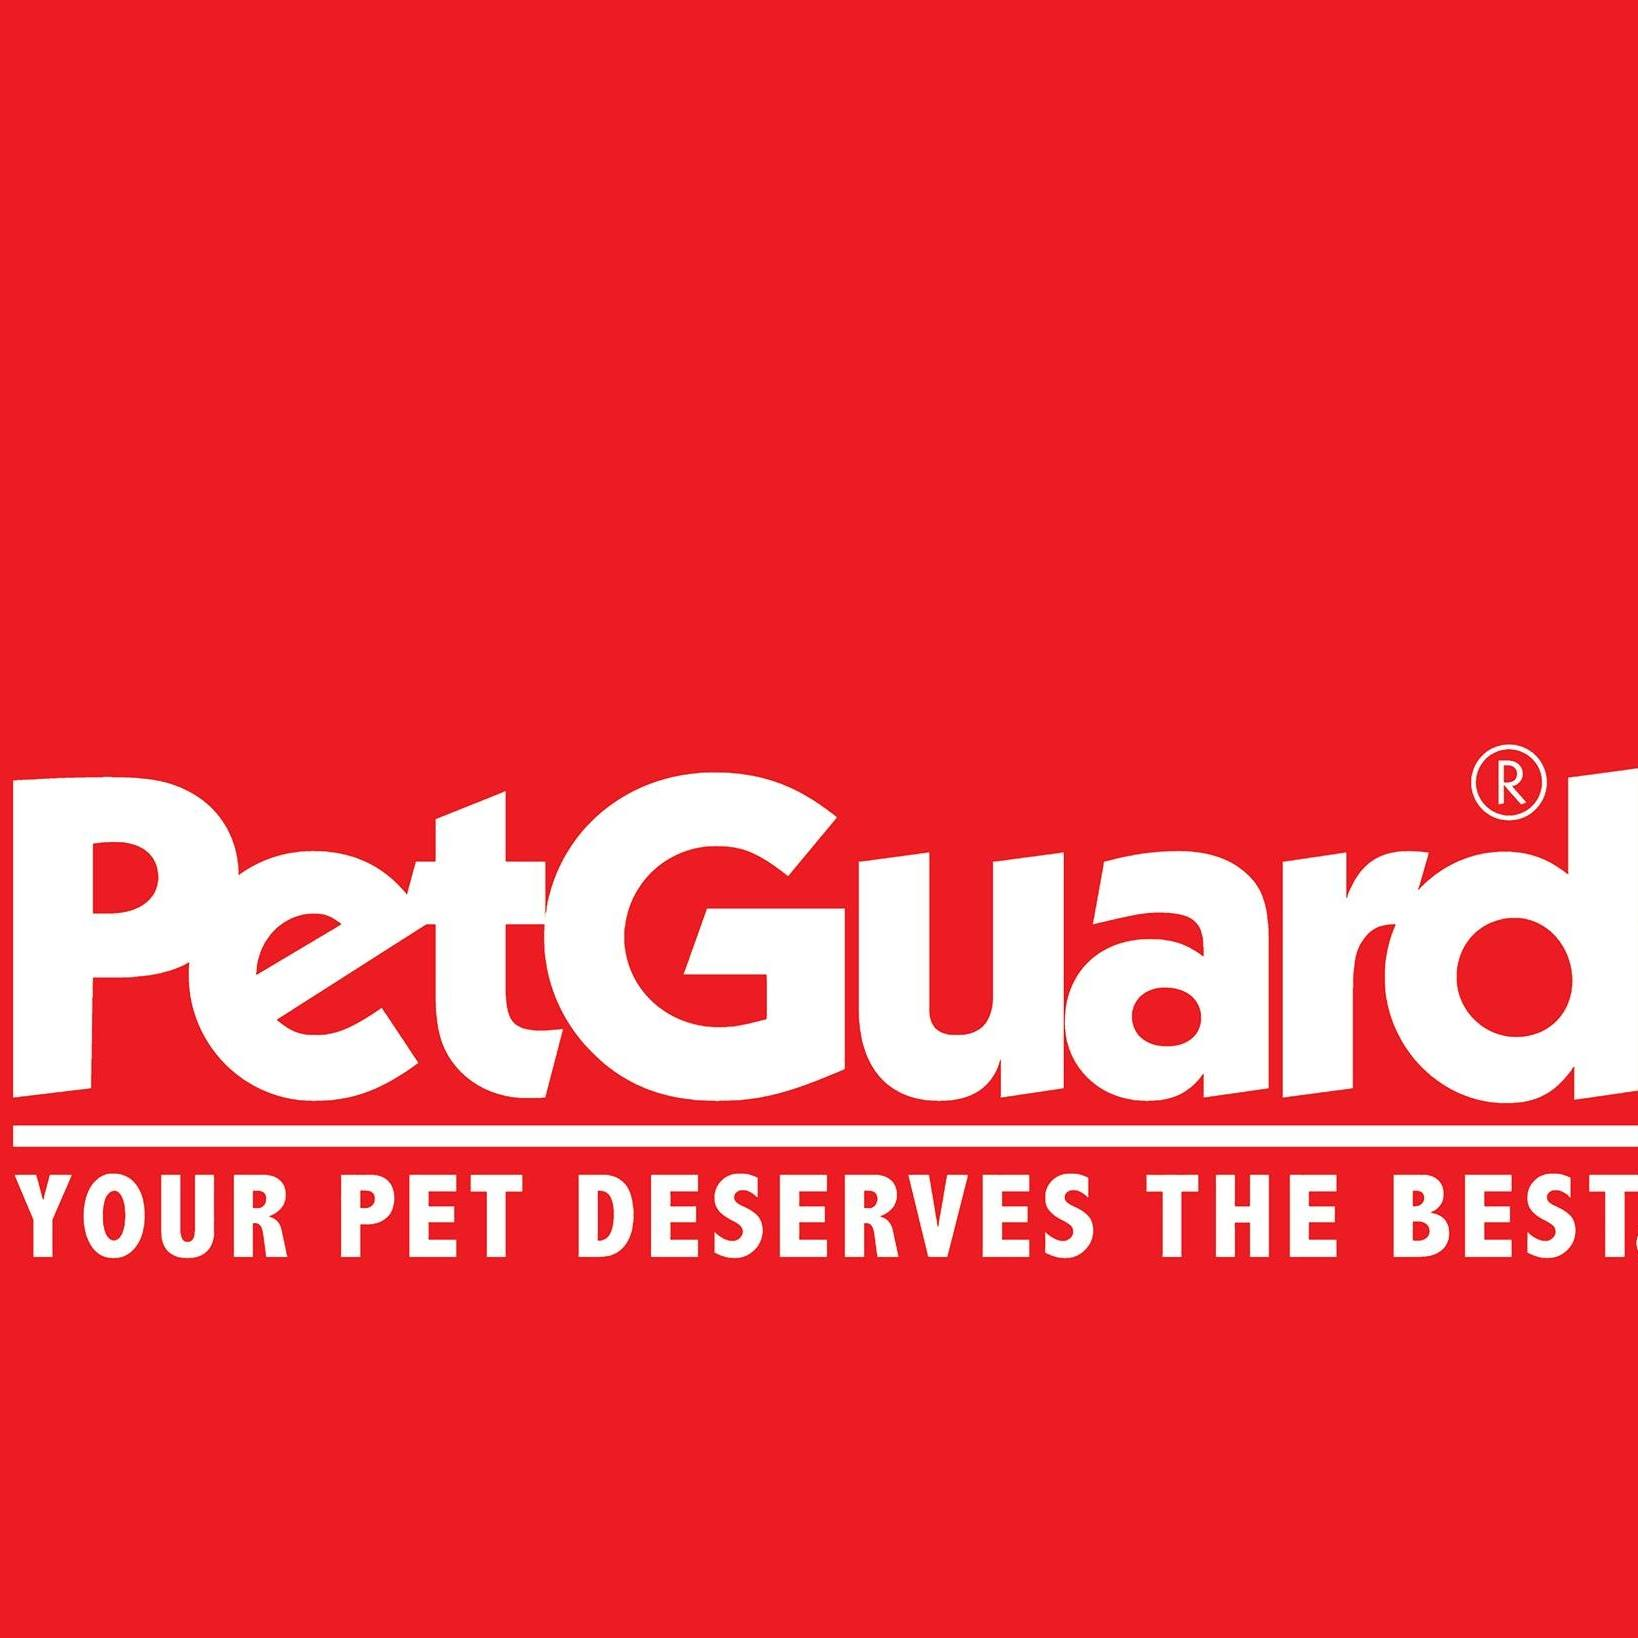 Petguard moves Headquarters and Warehouse to Pennsylvania